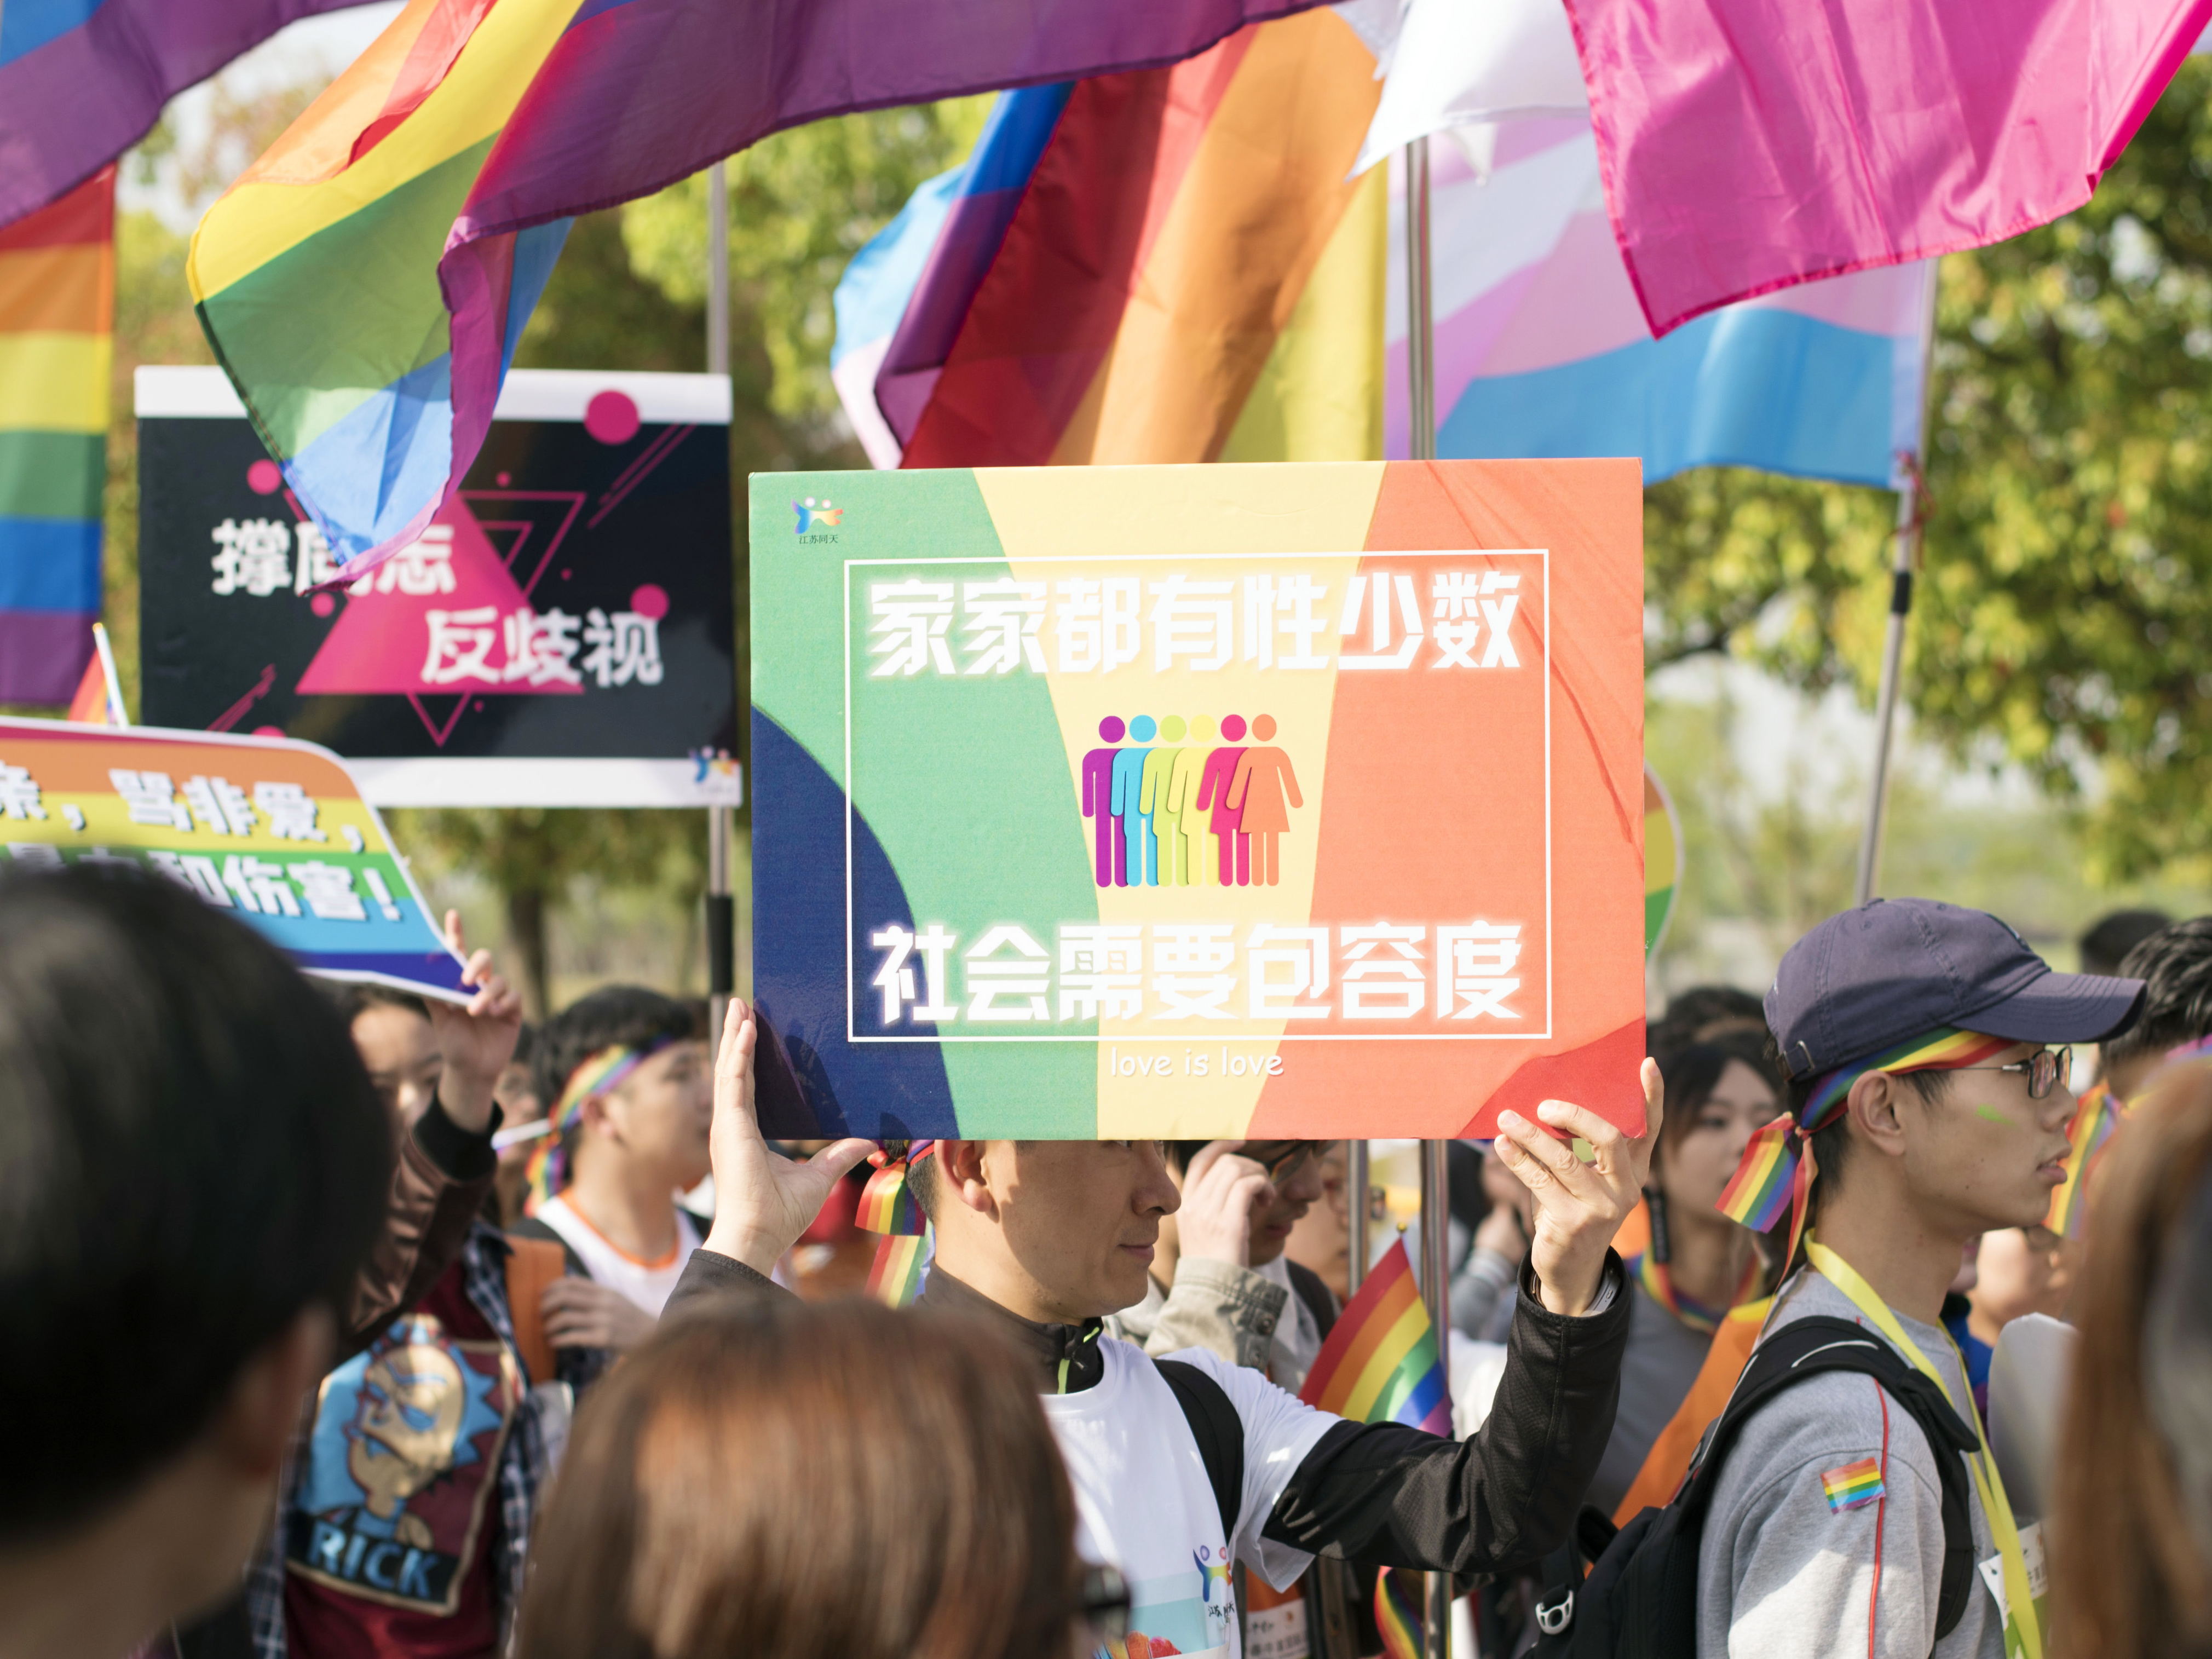 'I am gay' protests as China bans 'homosexual' content on Weibo